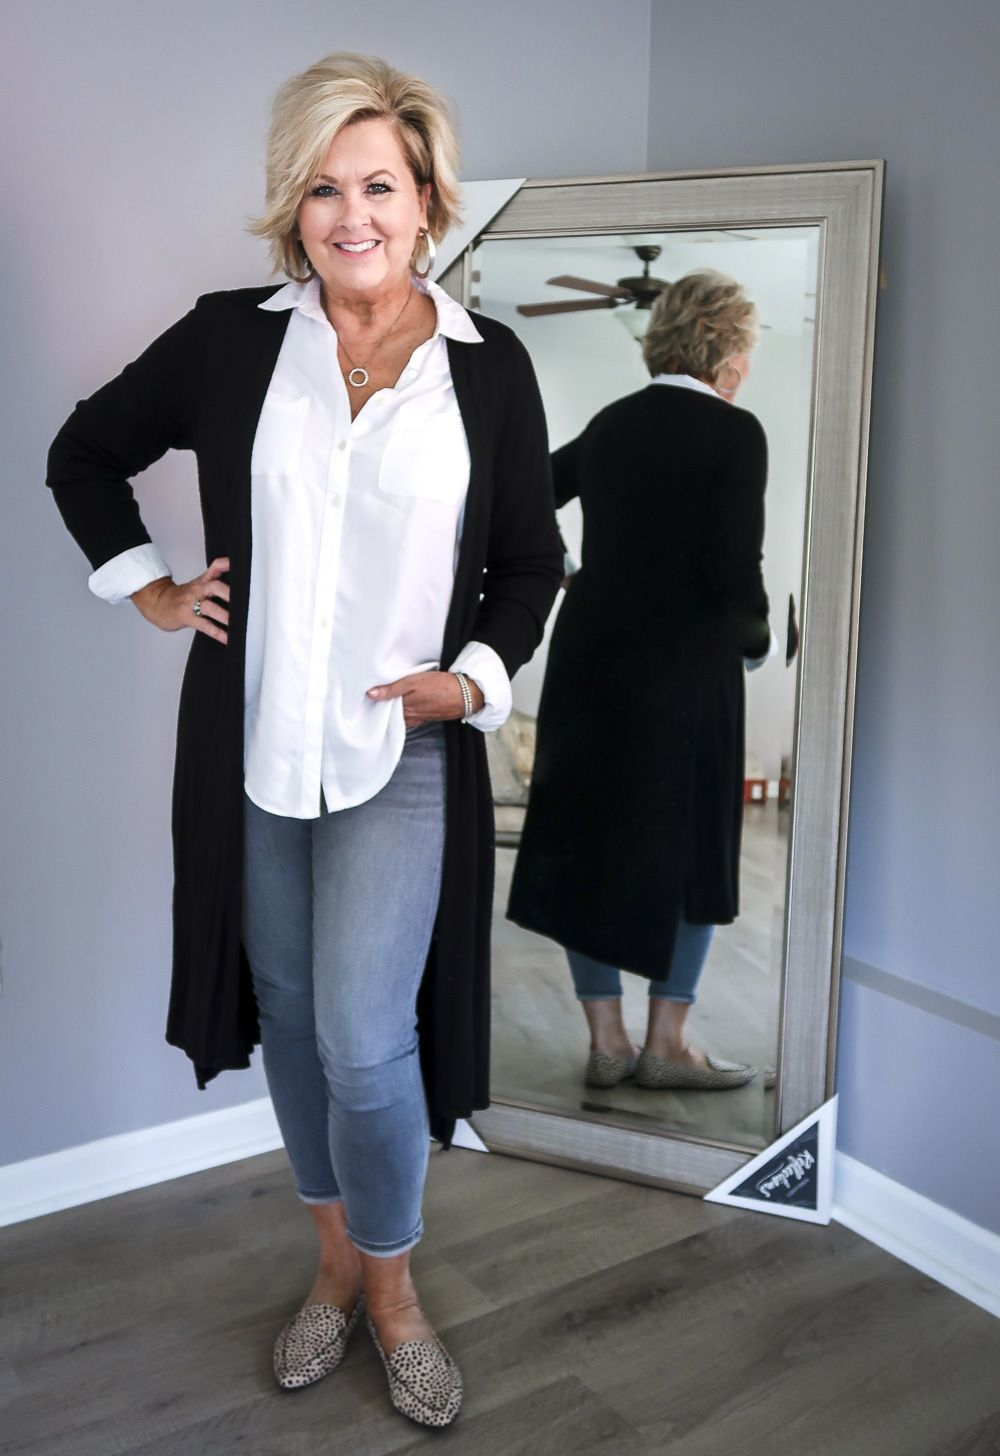 A Minimal And Classic Look For Staying At Home 50 Is Not Old In 2020 Fashion Casual Work Outfits Fashion Over 50